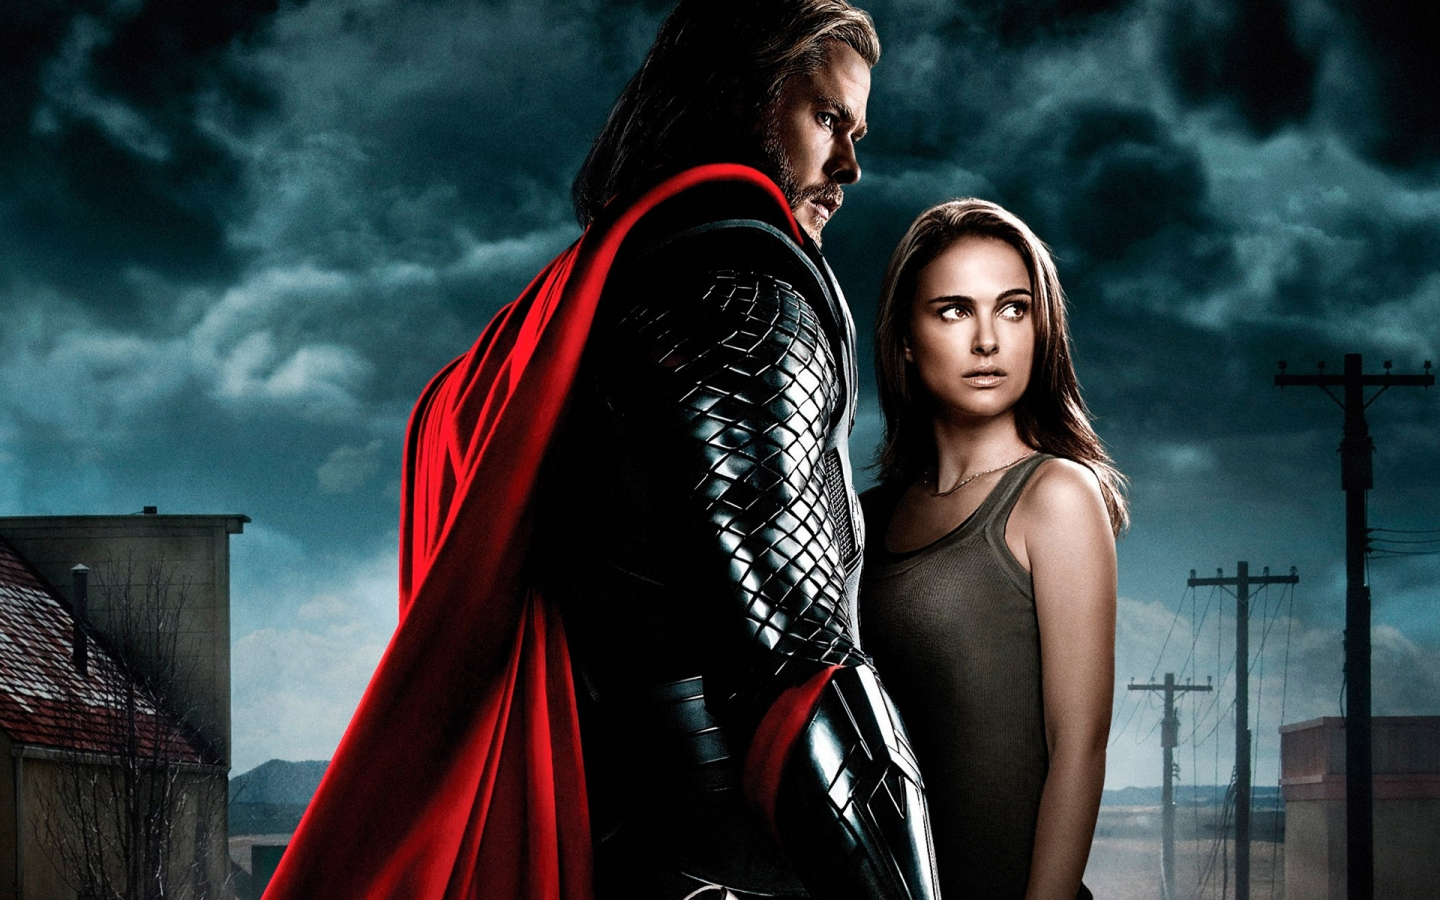 Thor and Jane Foster for 1440 x 900 widescreen resolution